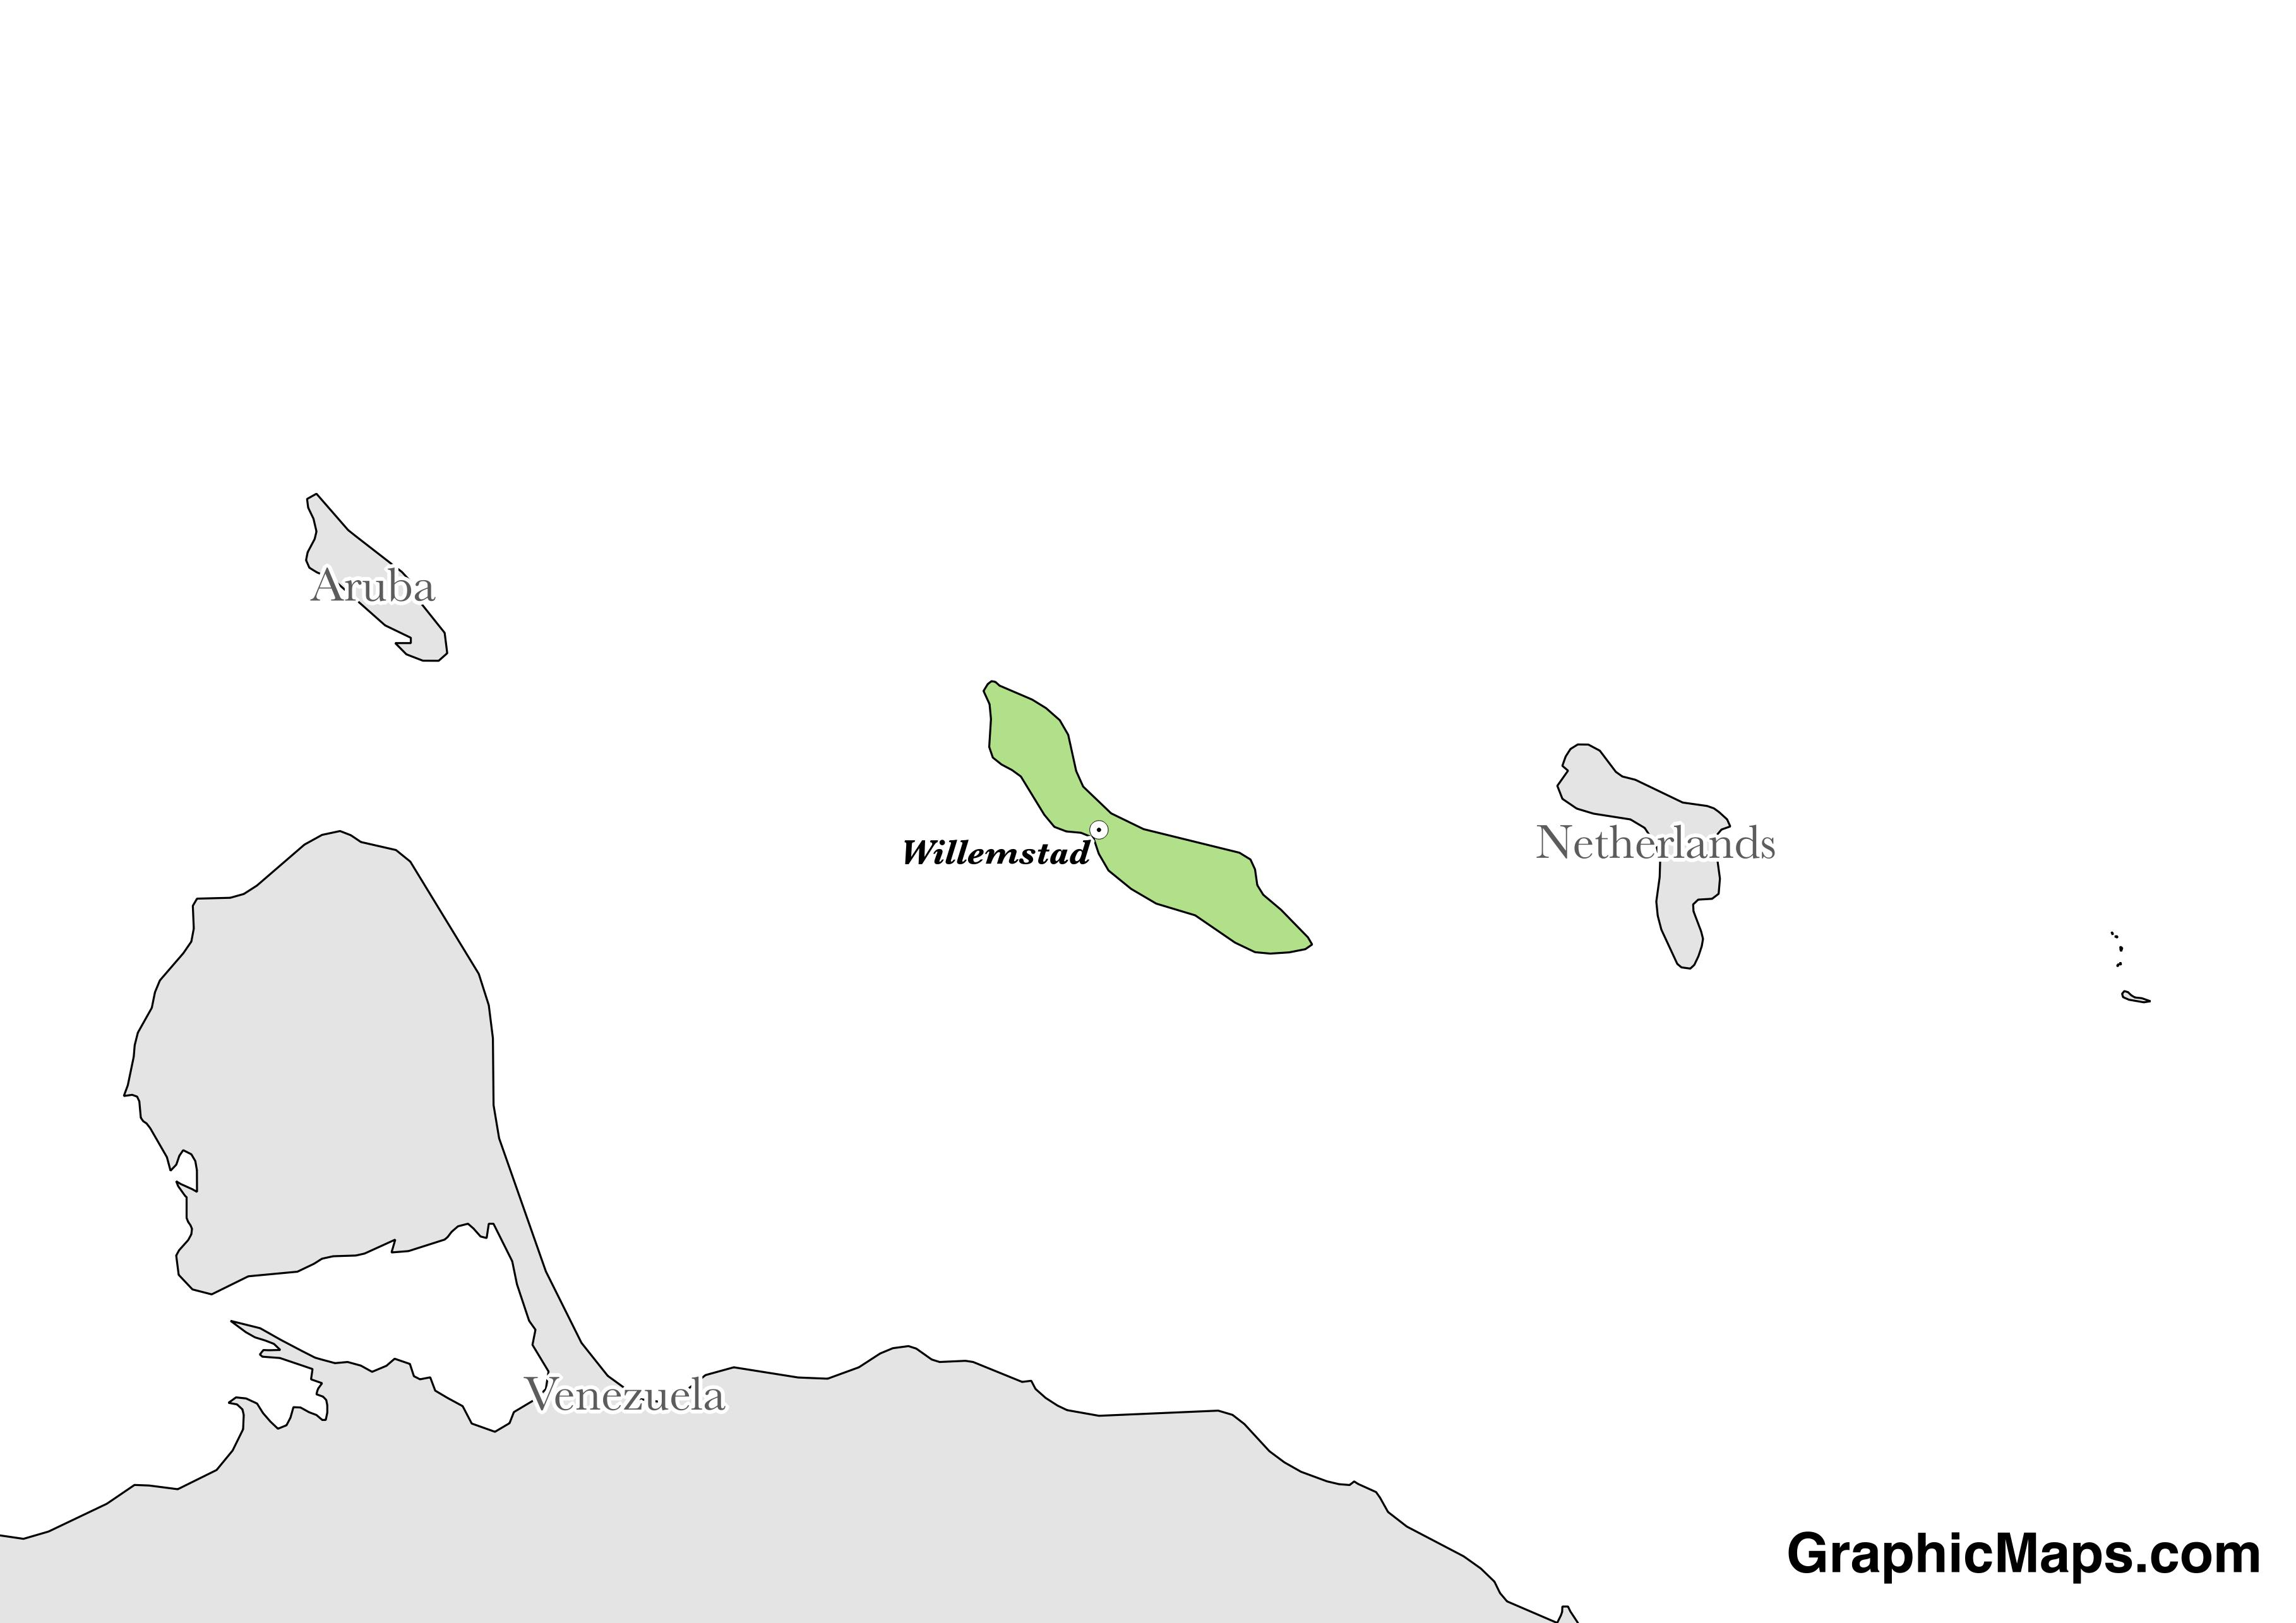 Map showing the location of Curacao